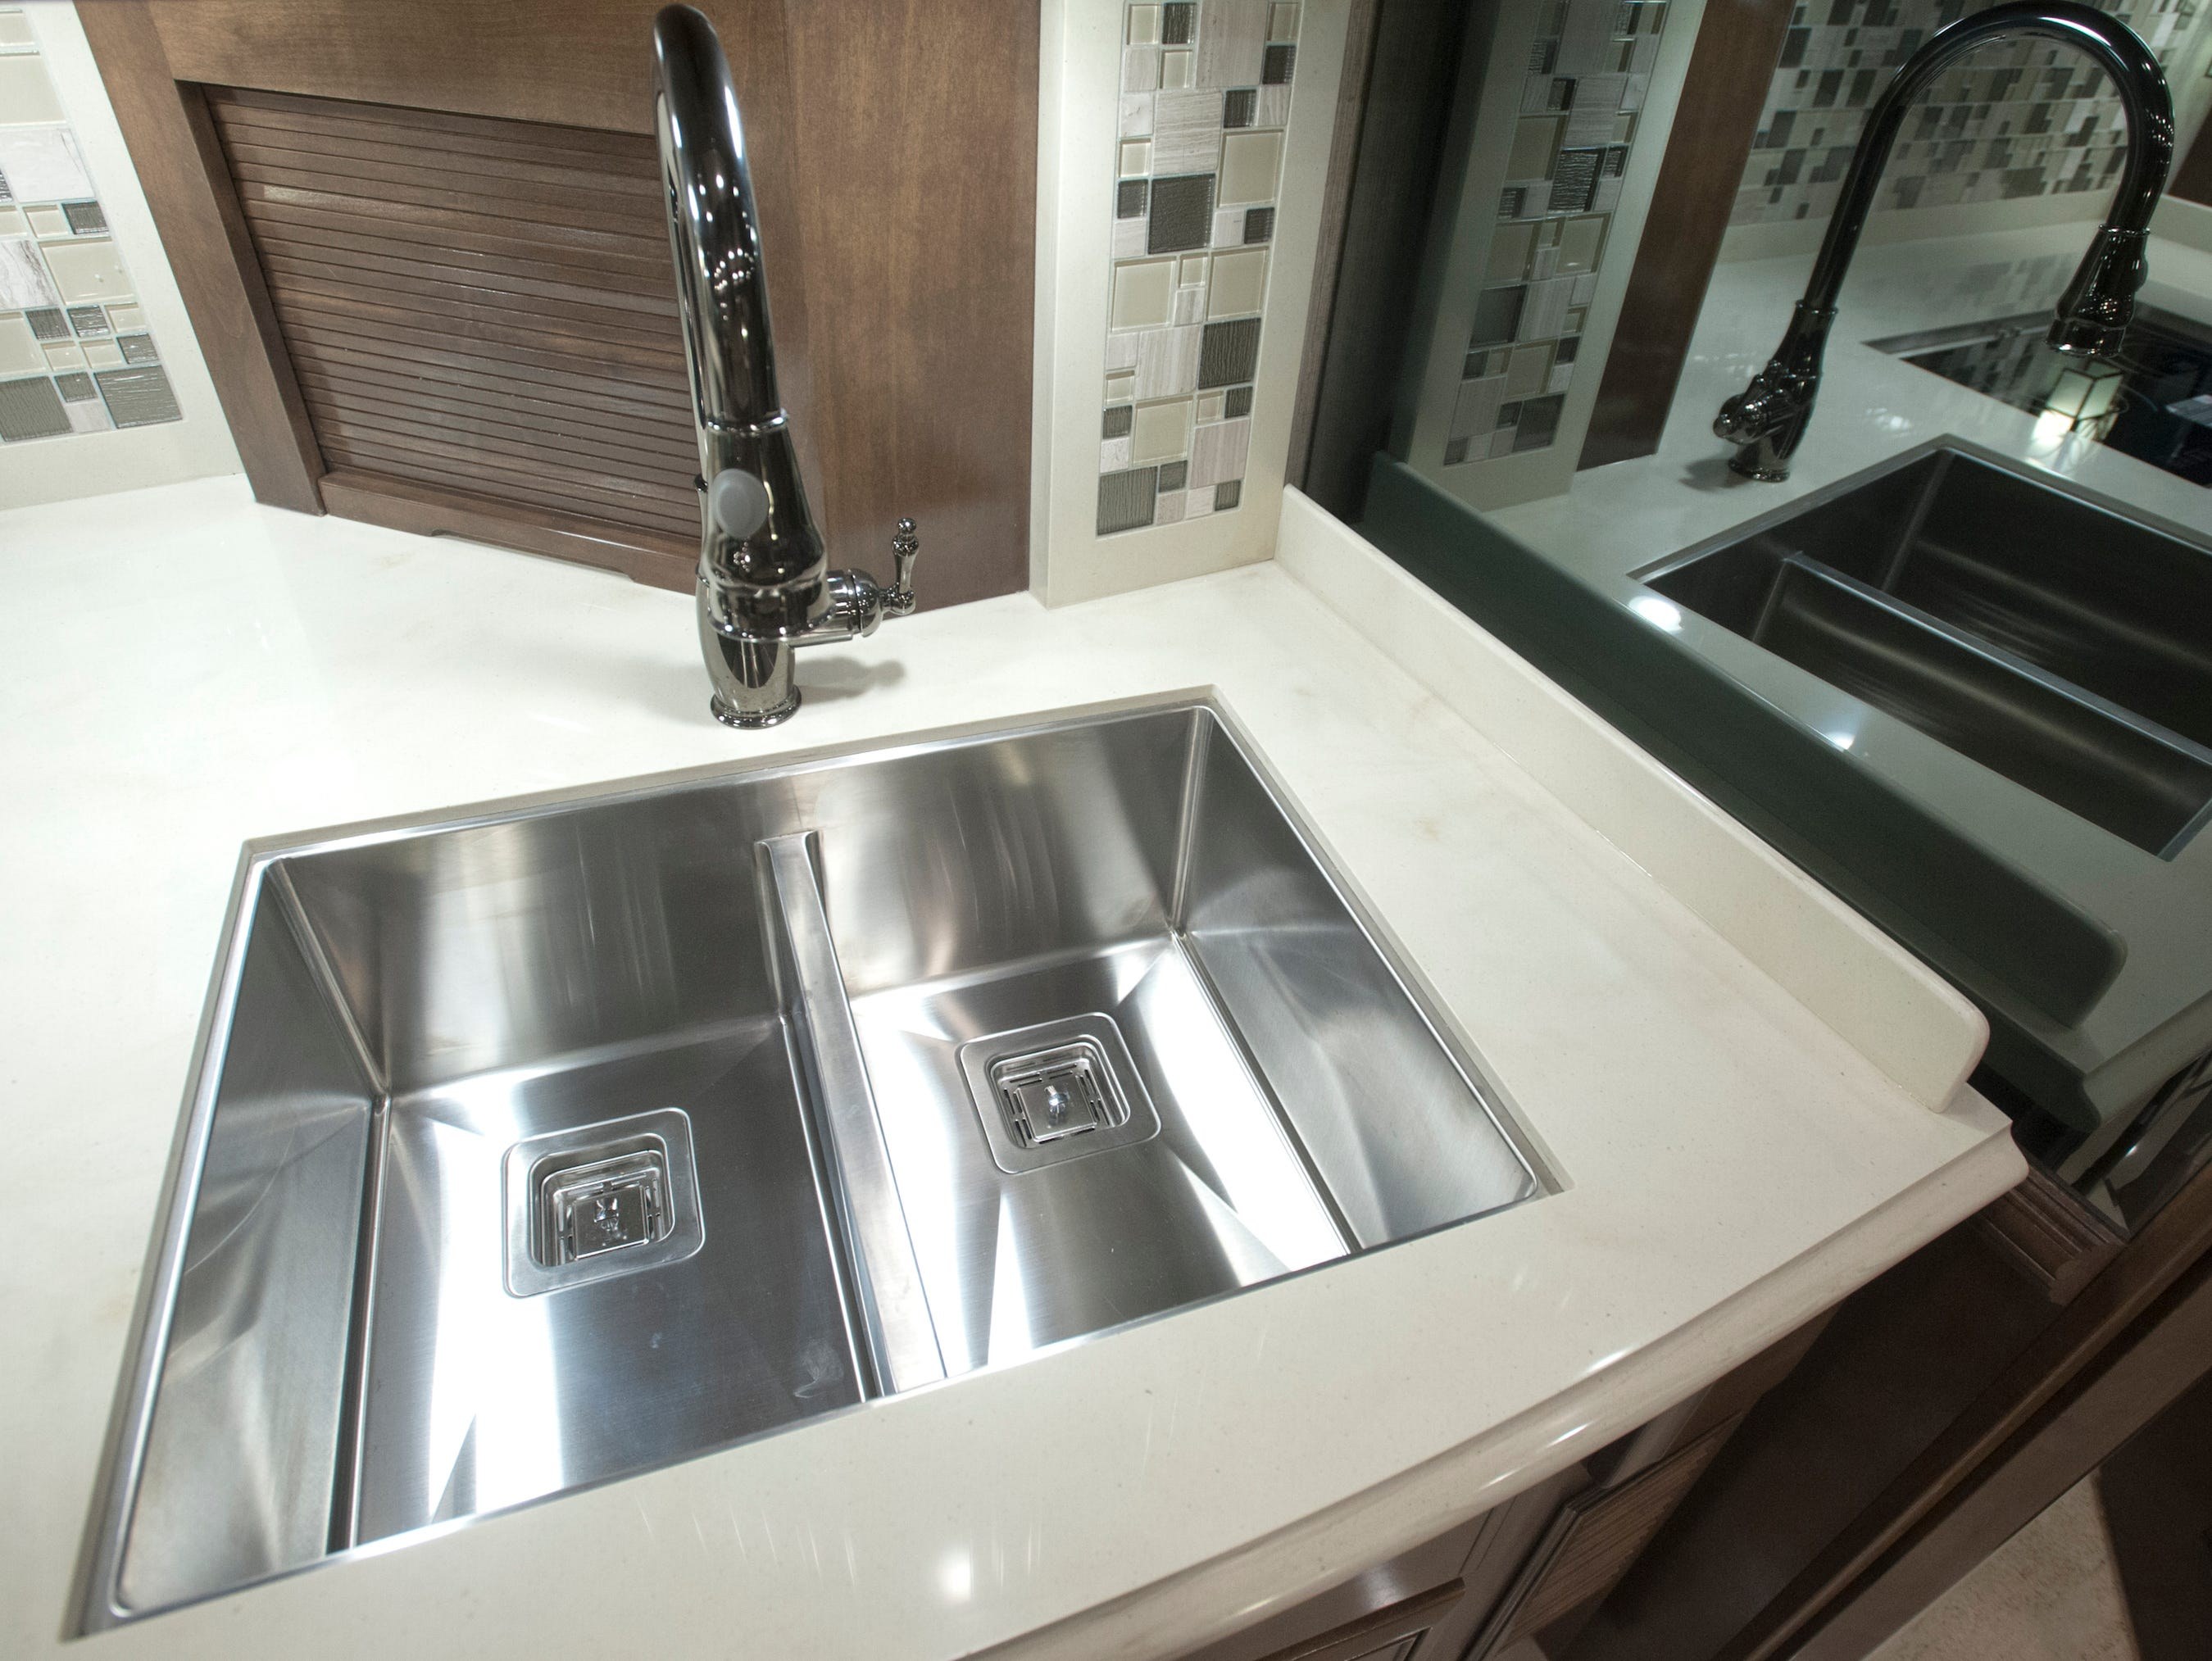 The steel double-sink in the kitchen (which i also reflected in a mirror at right.)11 December 2018